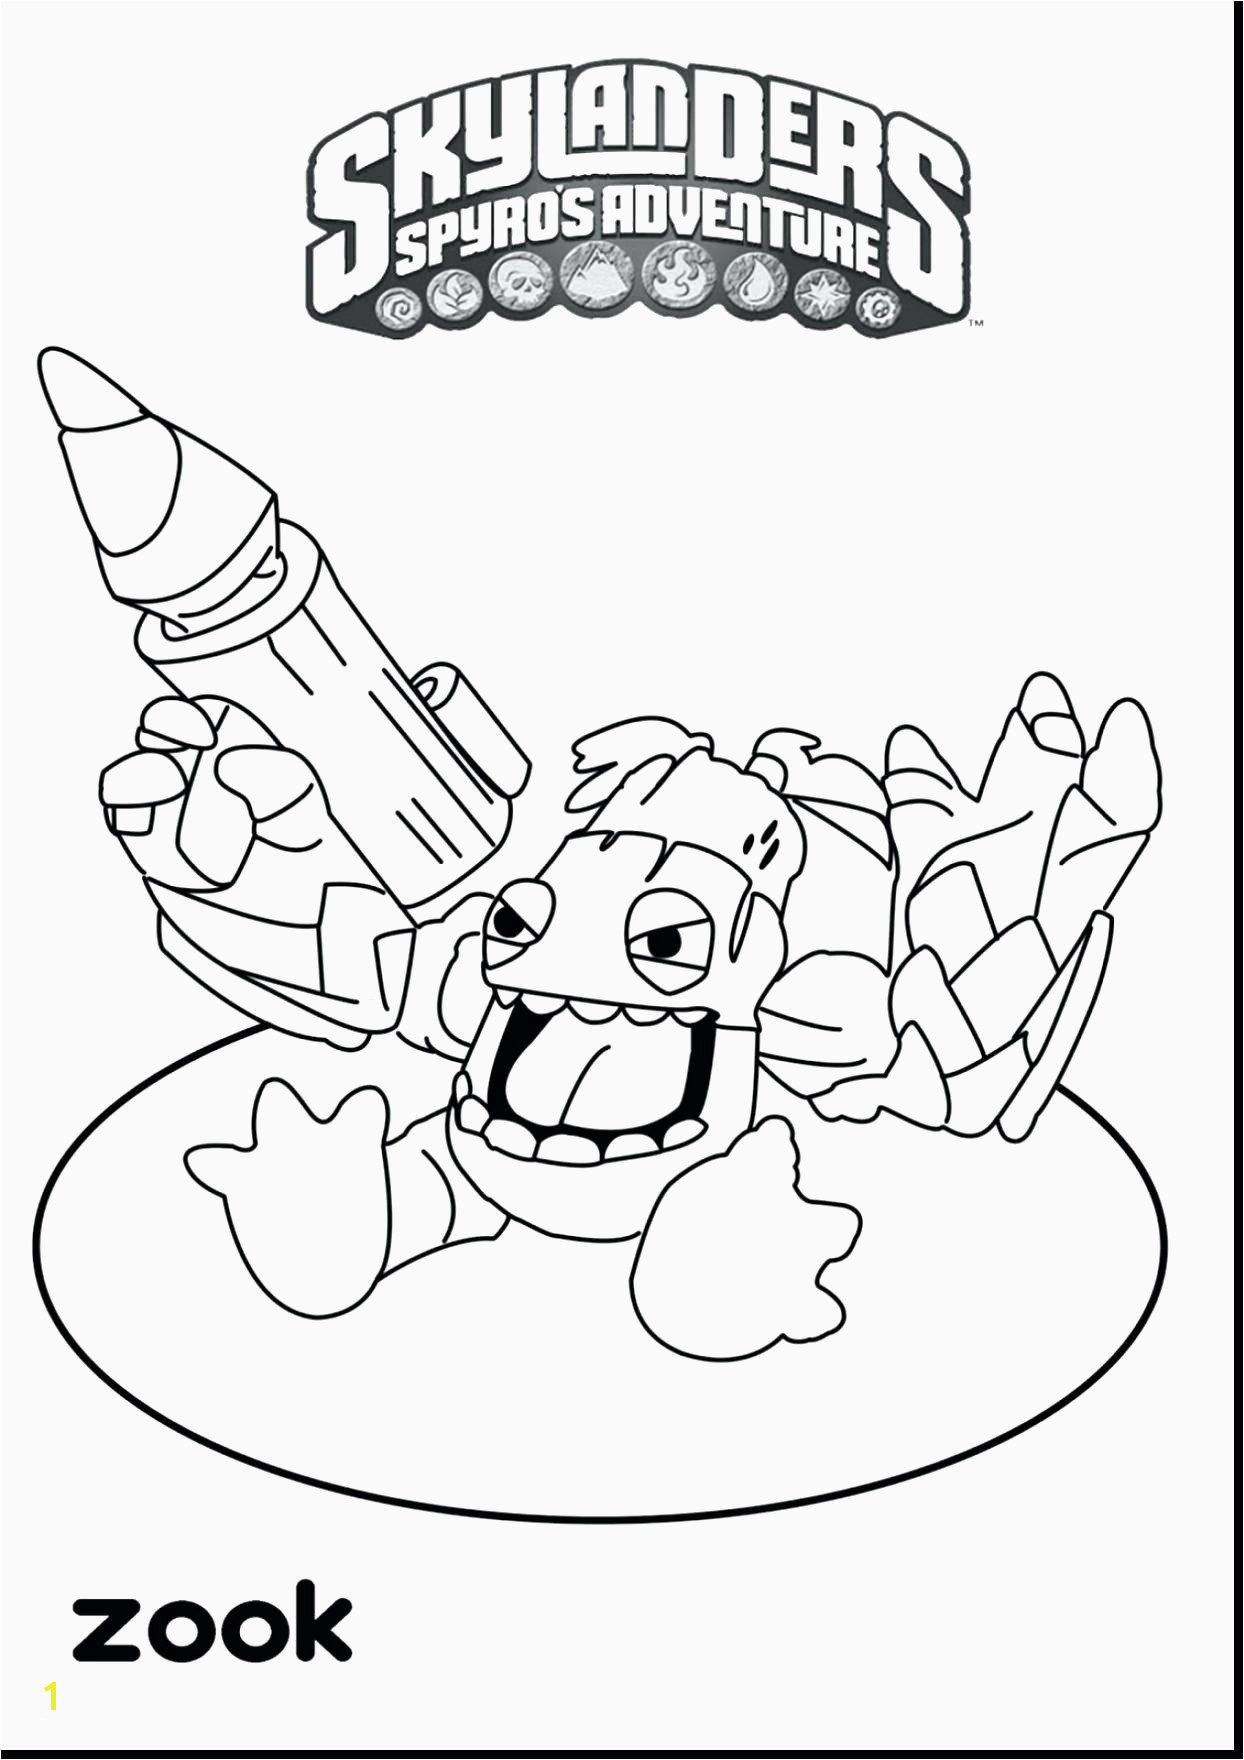 Make A Pizza Coloring Page Thank You Coloring Pages Gallery thephotosync